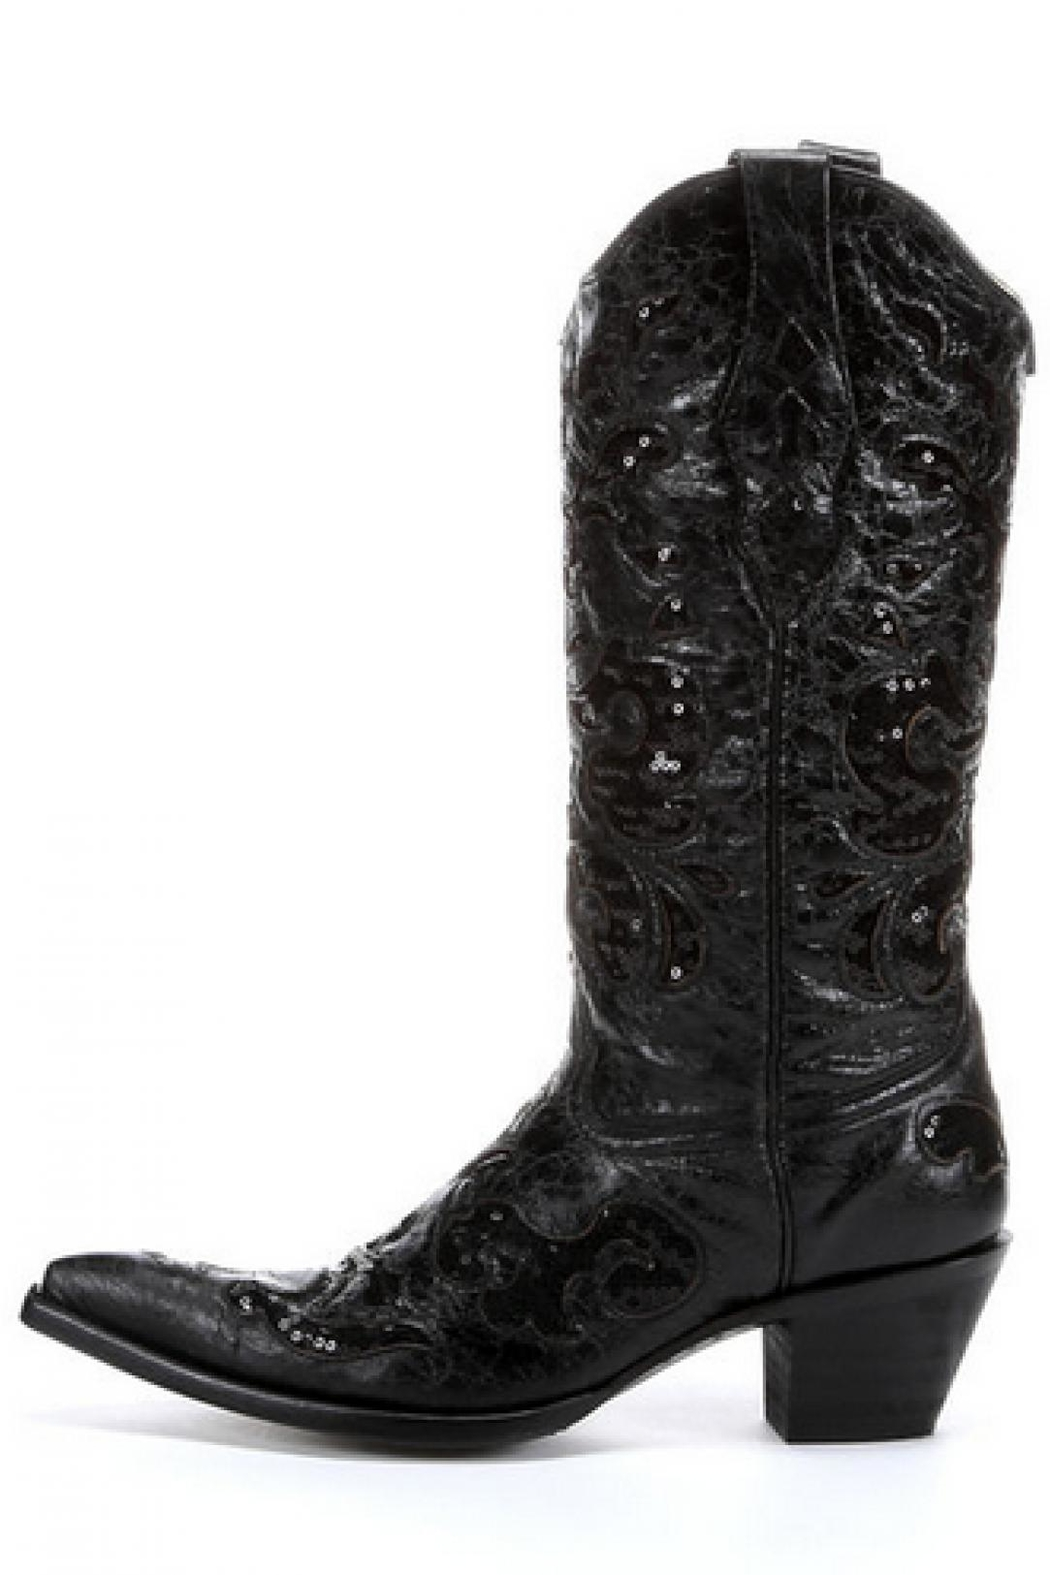 Corral Boots Black Sequence Boots - Front Cropped Image